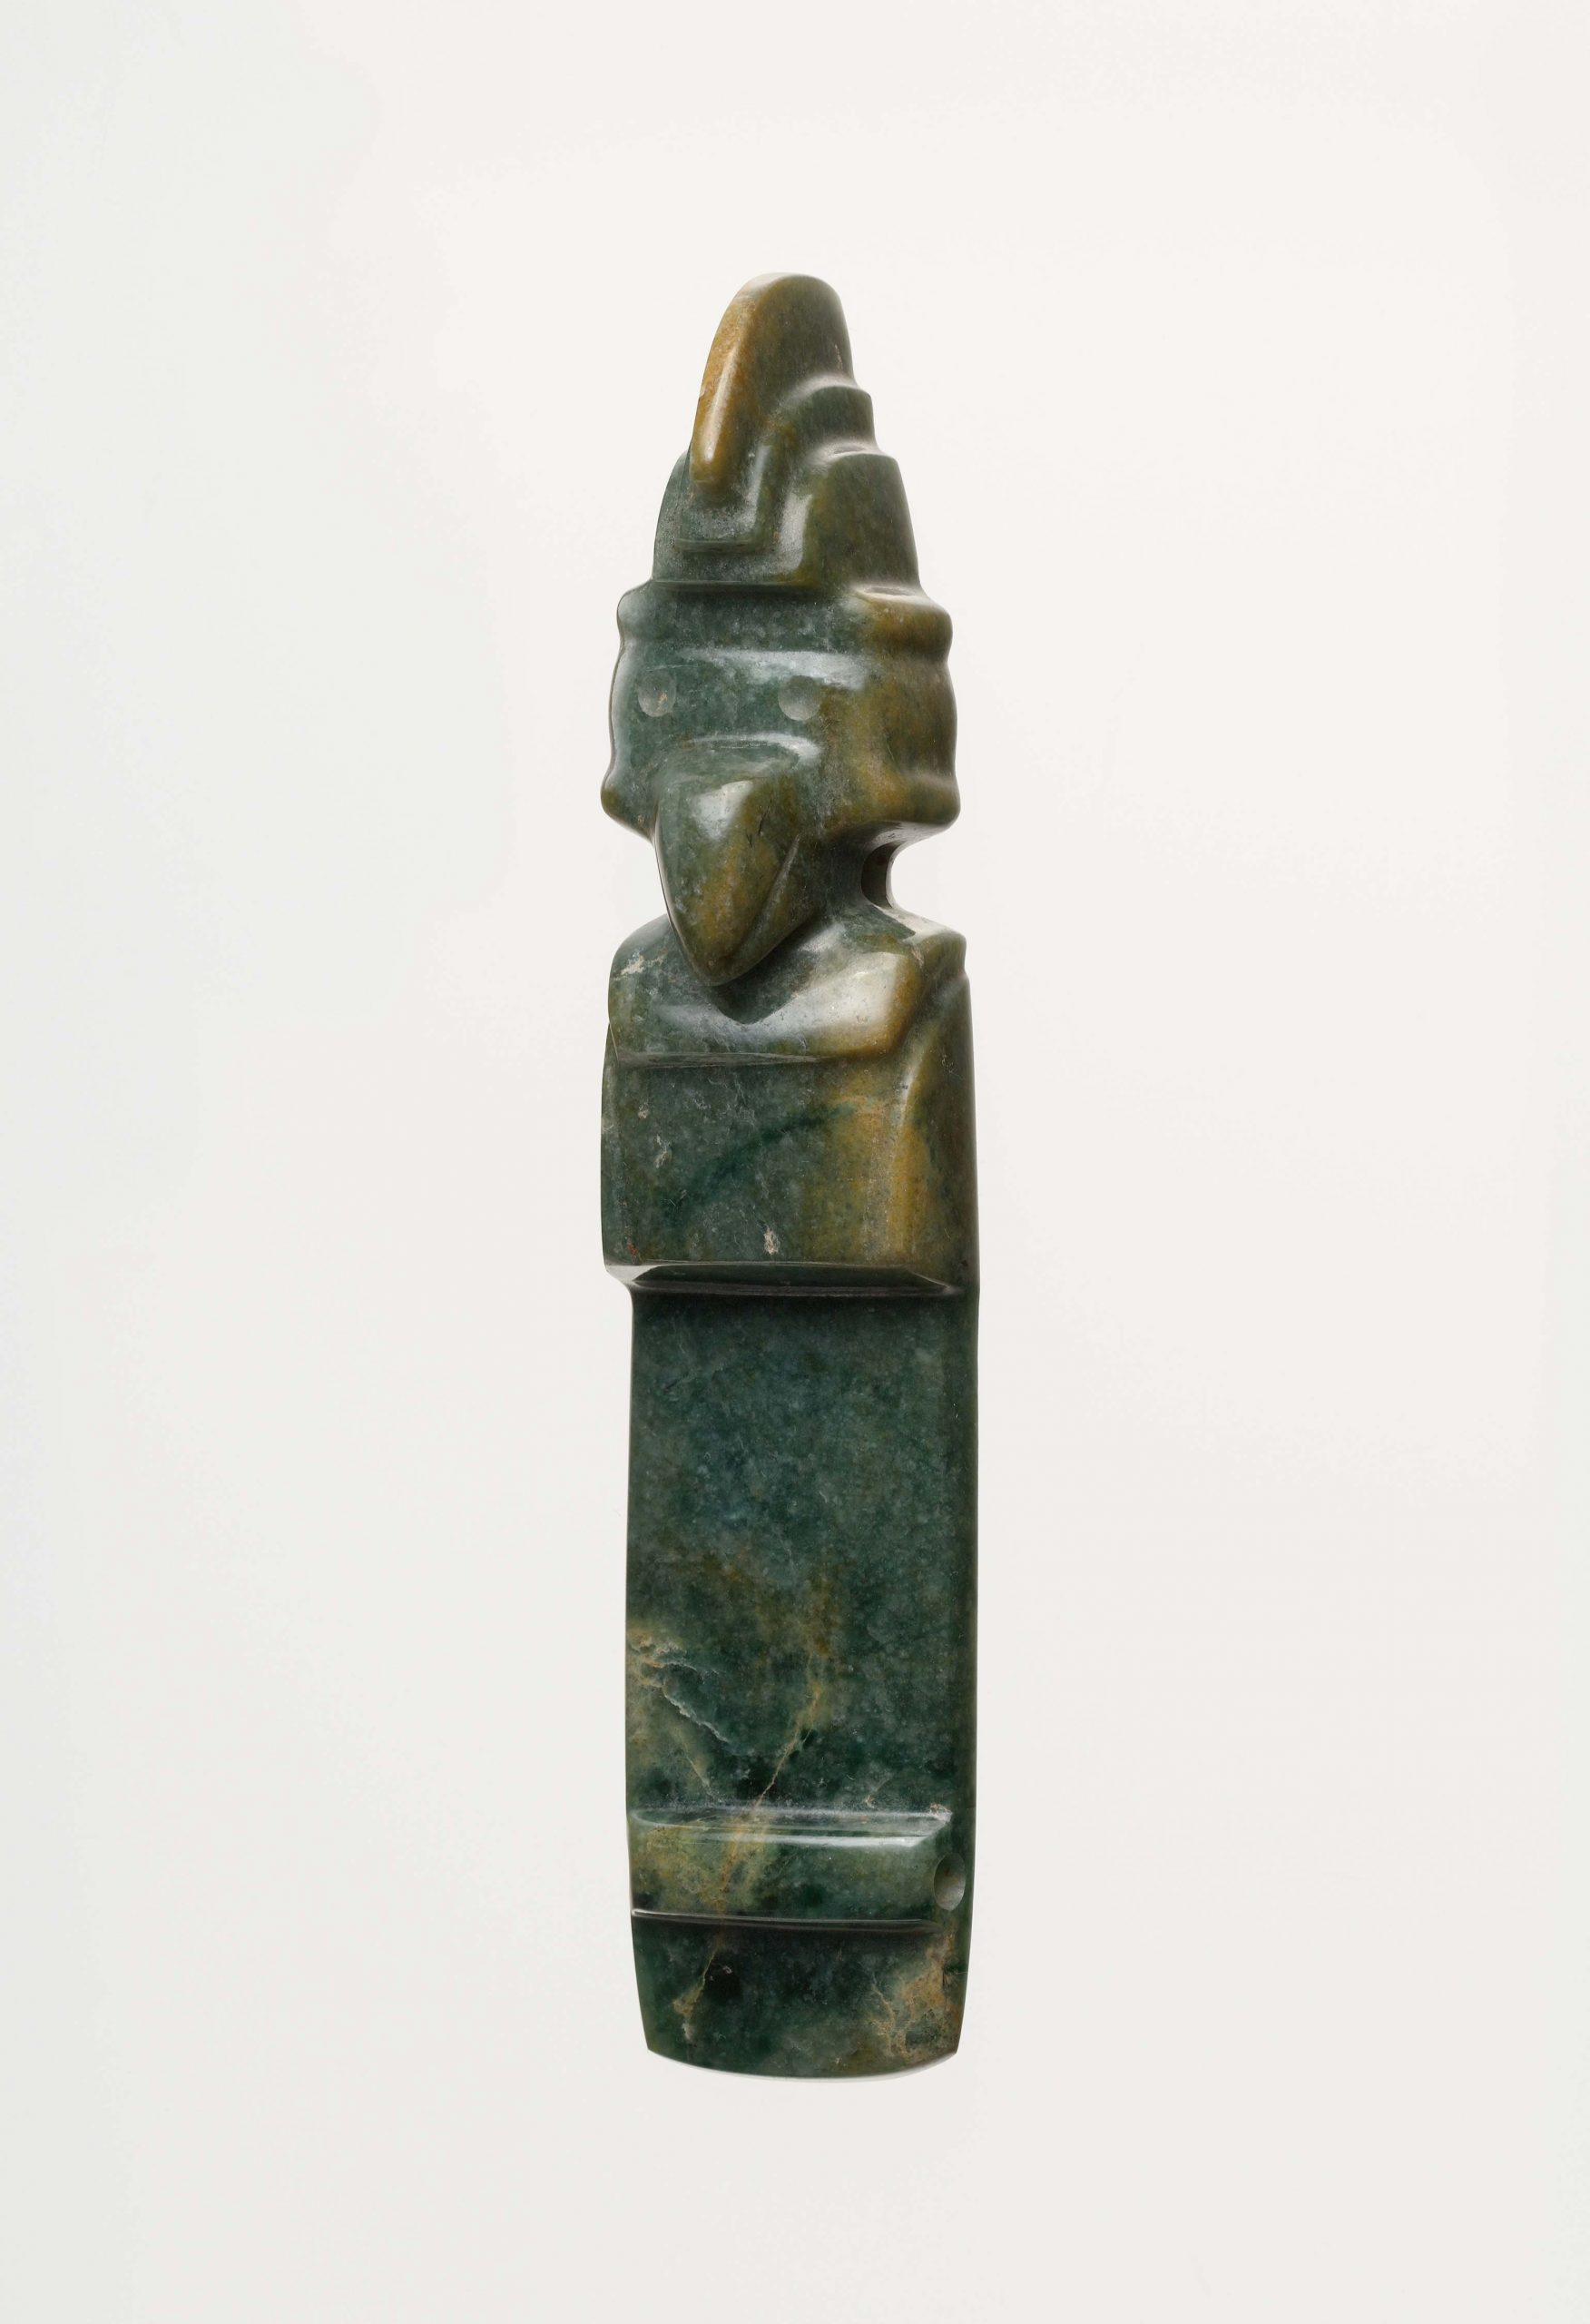 A dark green and yellow jade celt featuring a Costa Rican bird wearing three-tiered crown.